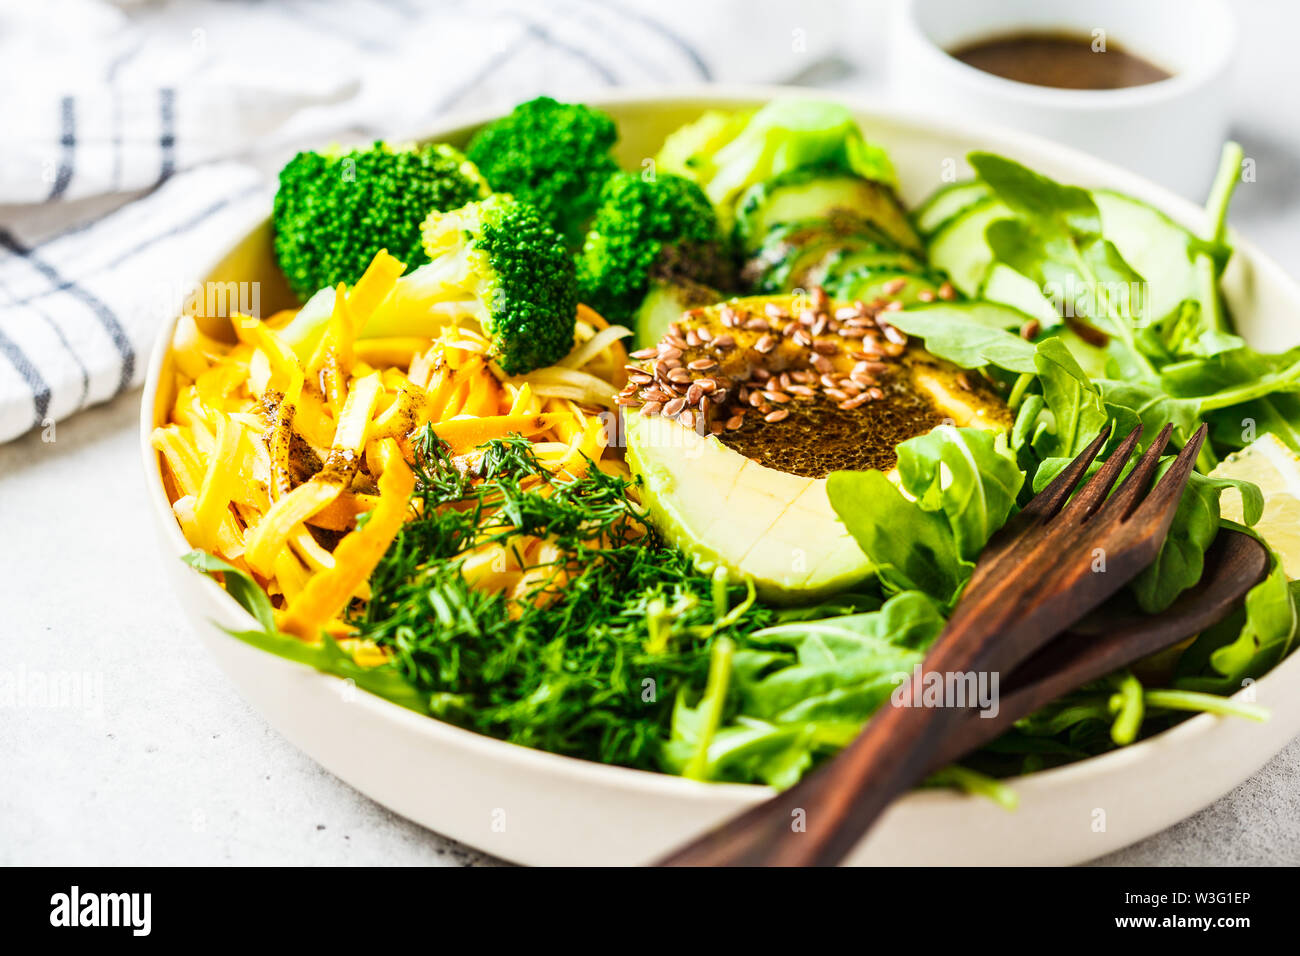 Green salad with broccoli, zucchini pasta, avocado and dressing. Plant based diet concept. - Stock Image